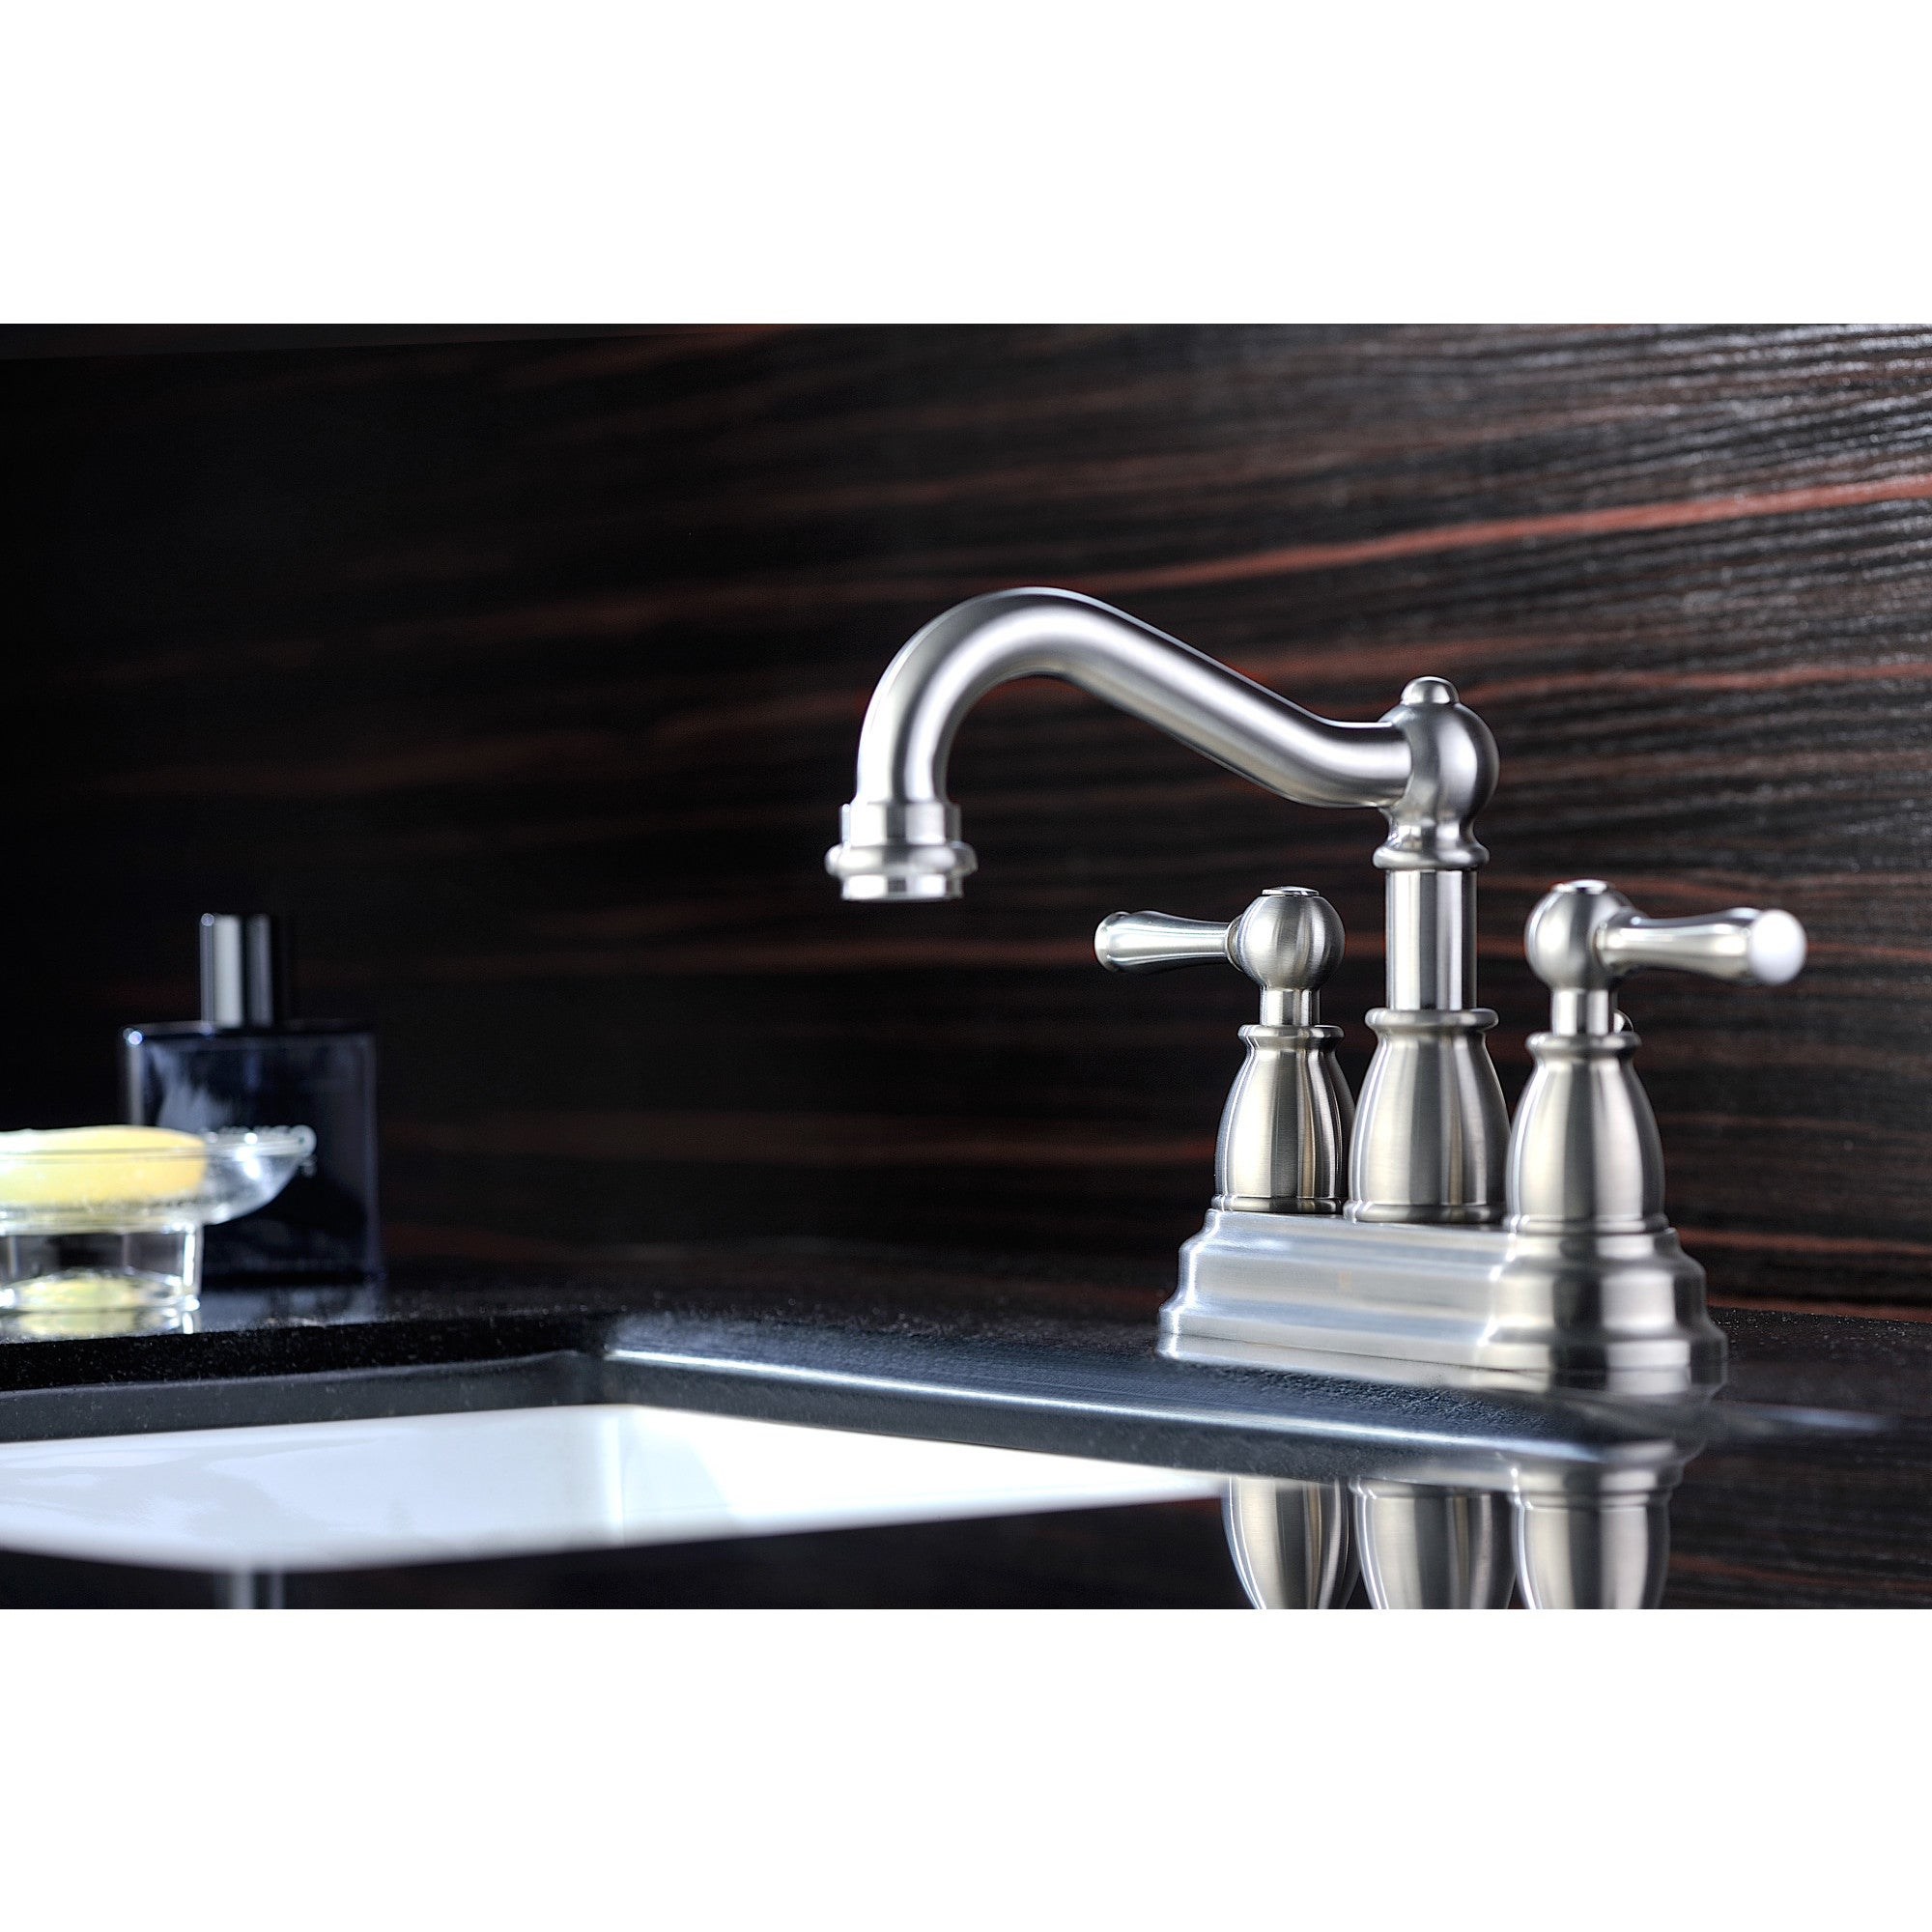 Shop ANZZI Edge 4-inch Centerset 2-handle Mid-arc Bathroom Faucet in ...